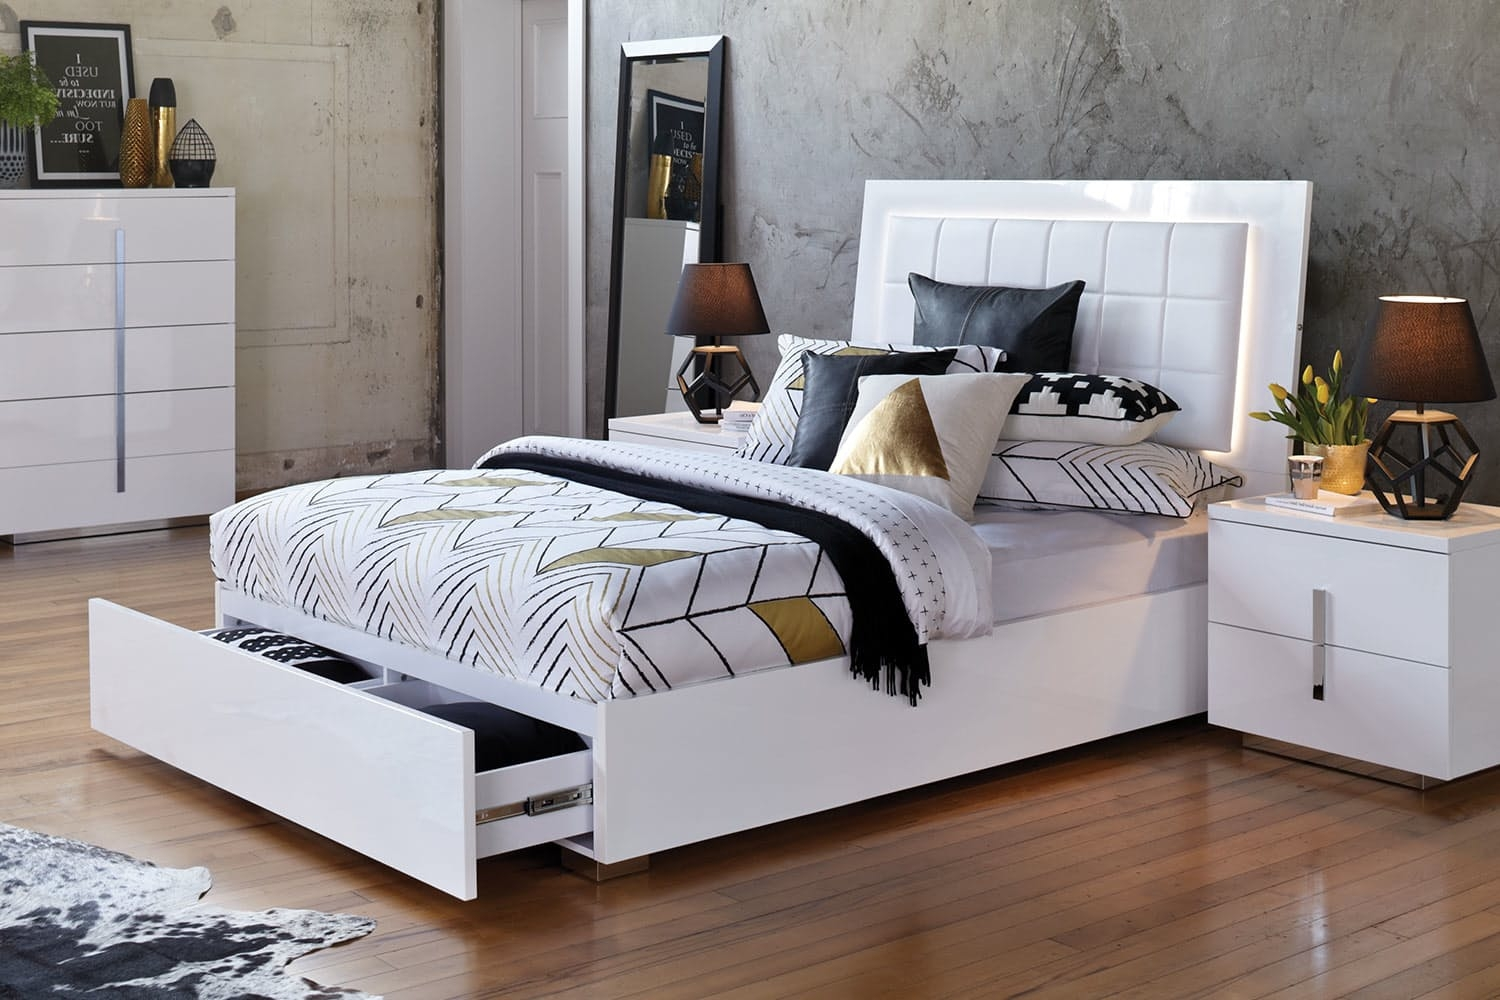 Permalink to Queen Bed Frames For Small Rooms